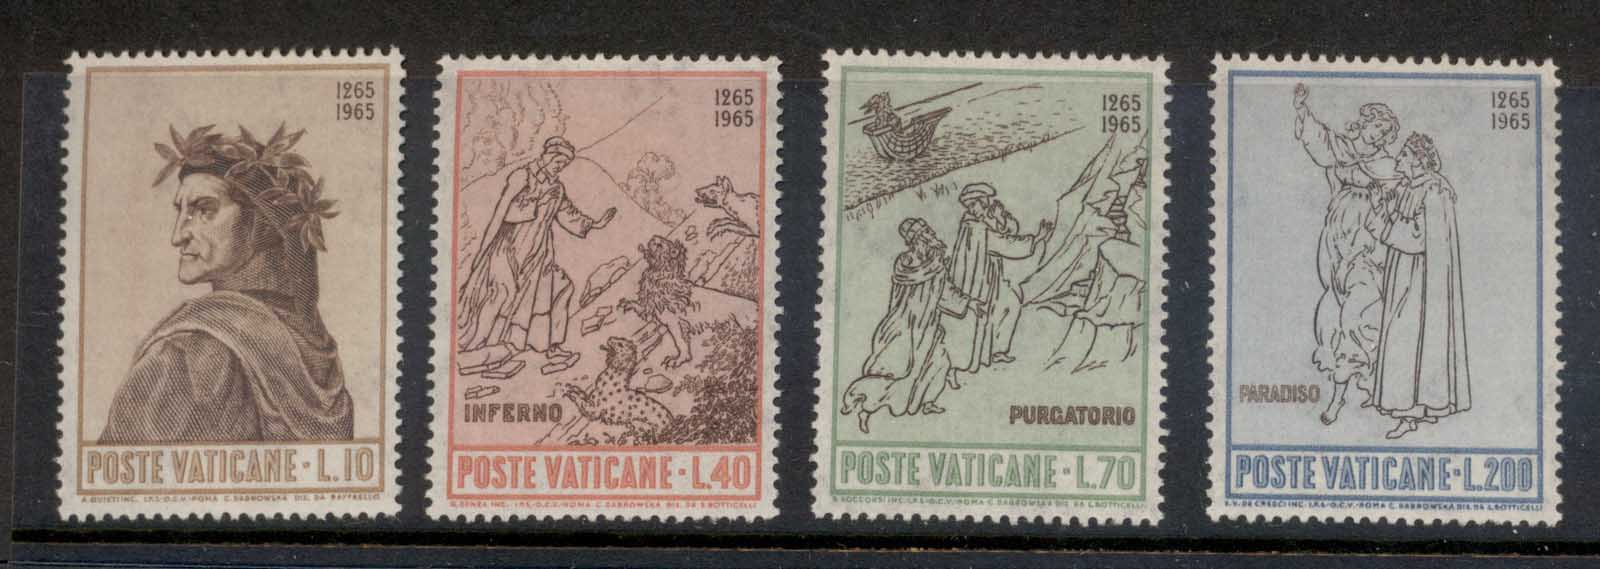 Vatican 1965 Birth of Dante Alighieri 700th Anniv. MLH